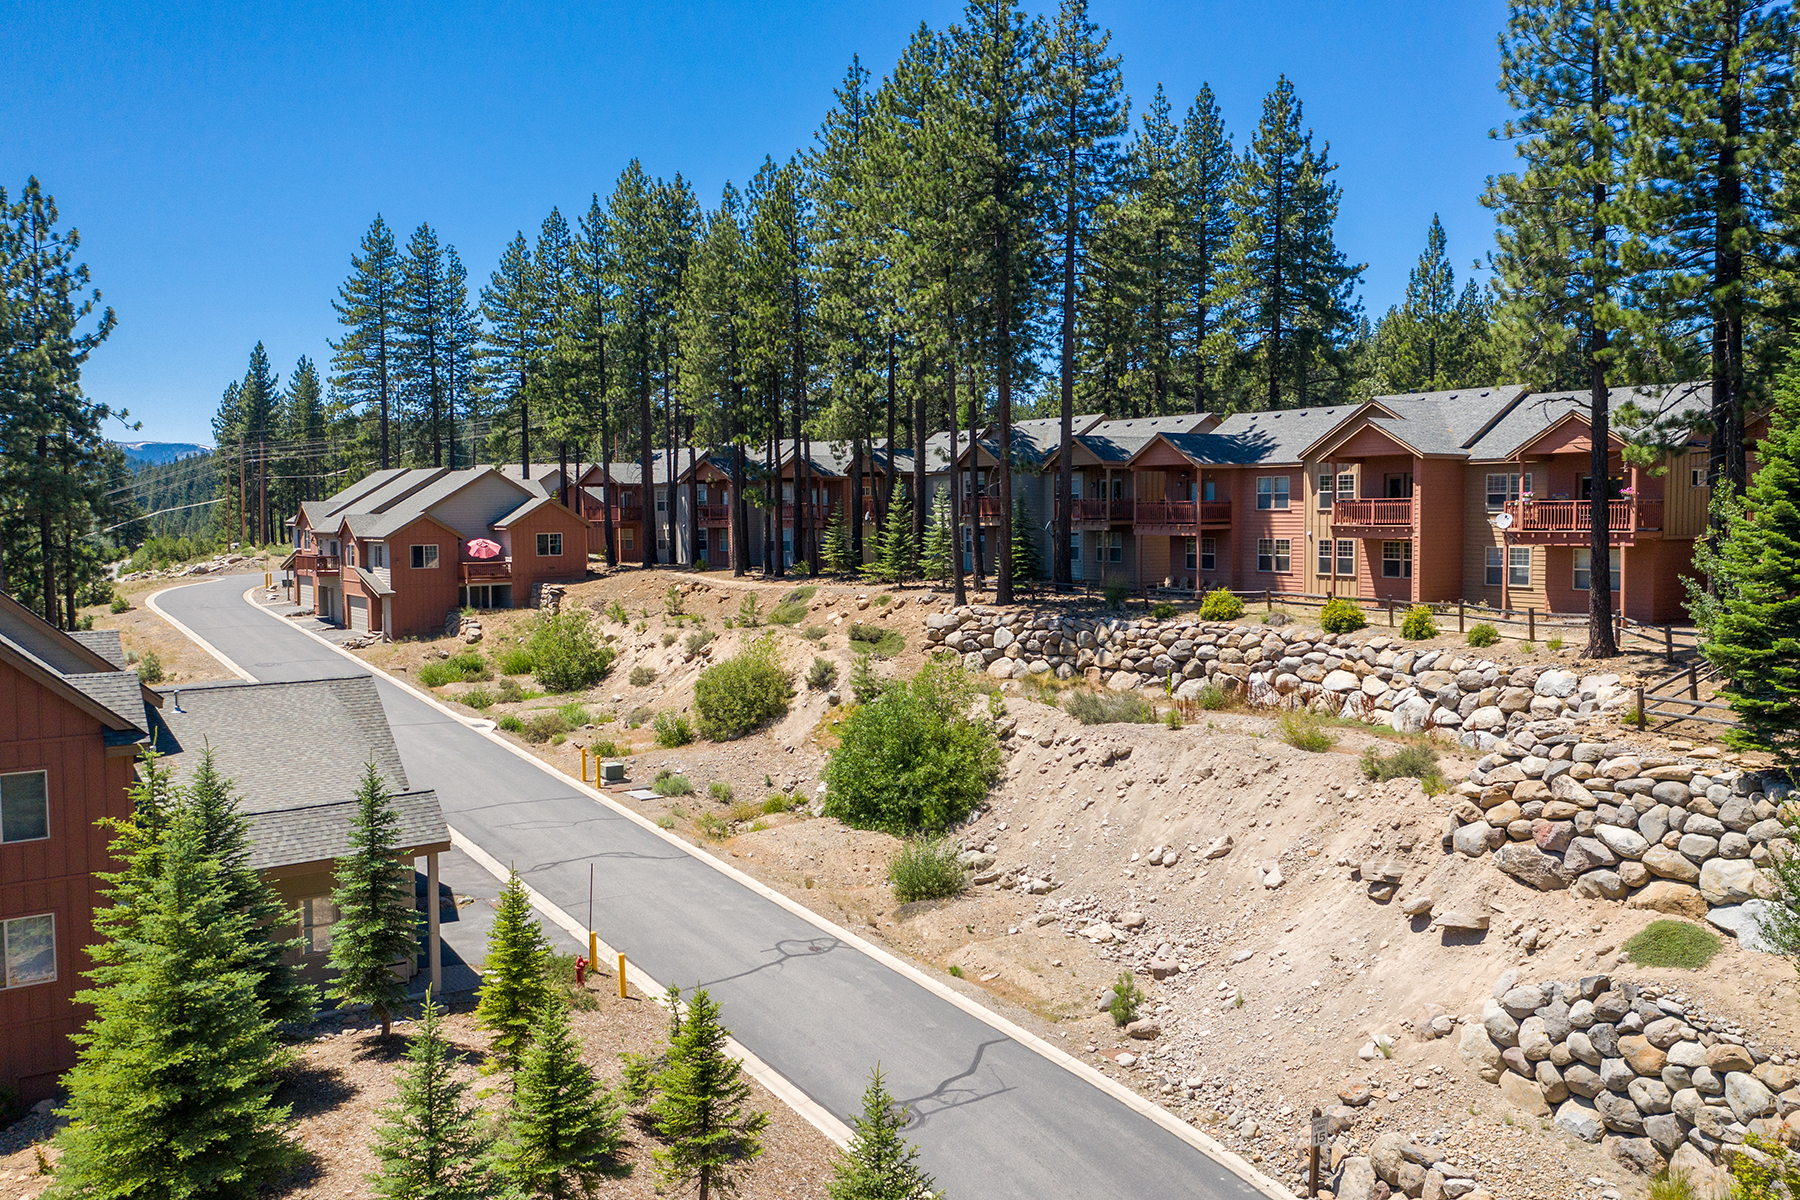 Additional photo for property listing at Wonderful Business Opportunity 10153-10318 Stoneridge Dr. Truckee, California 96161 United States